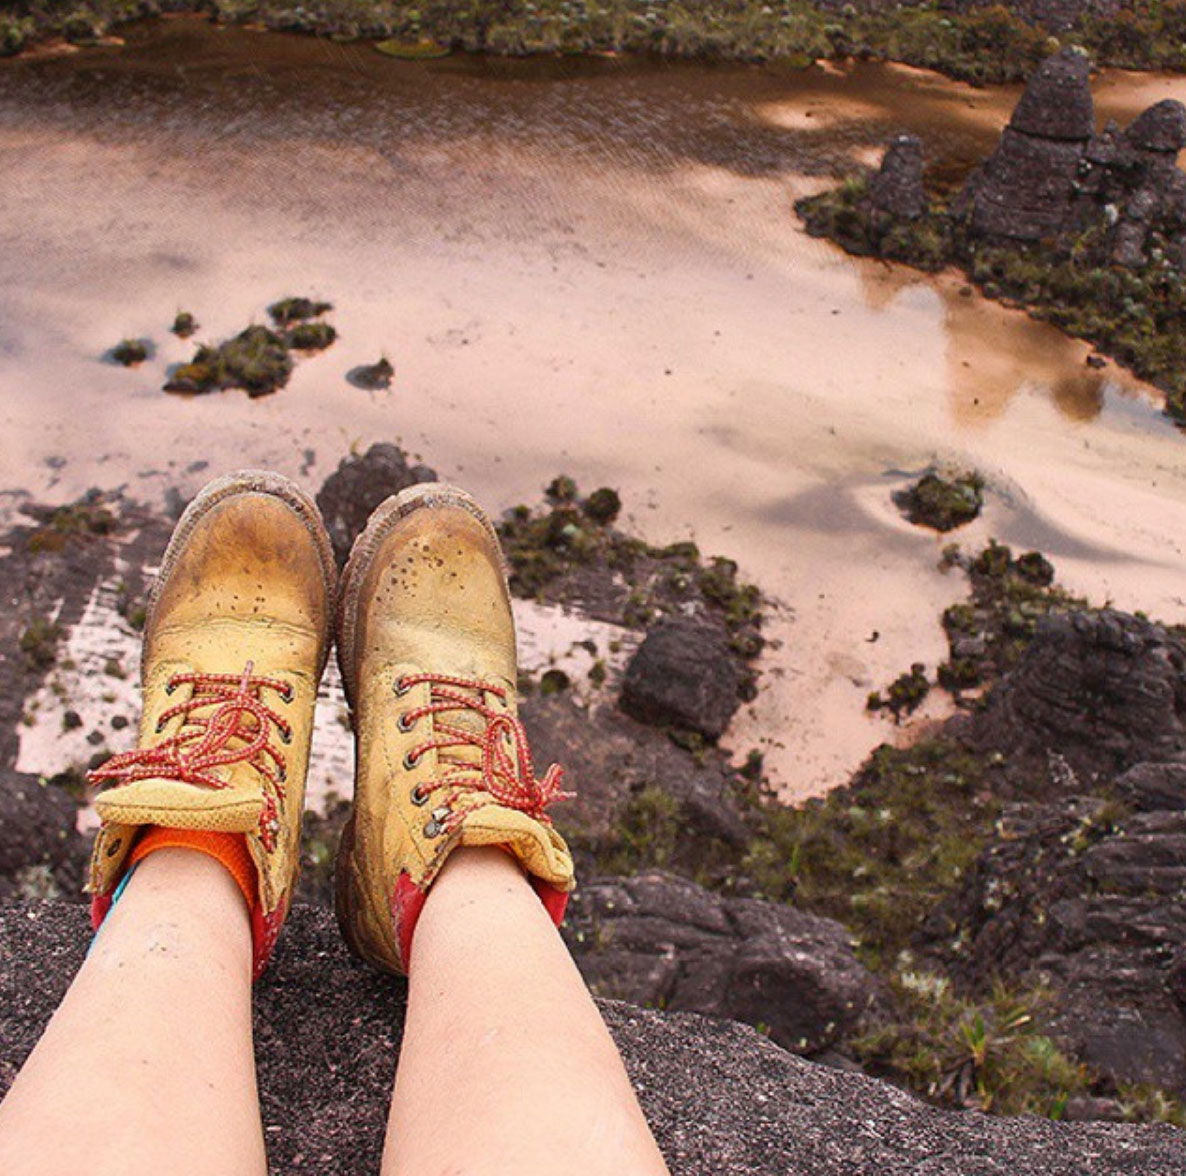 Dirty Boots in The roraima